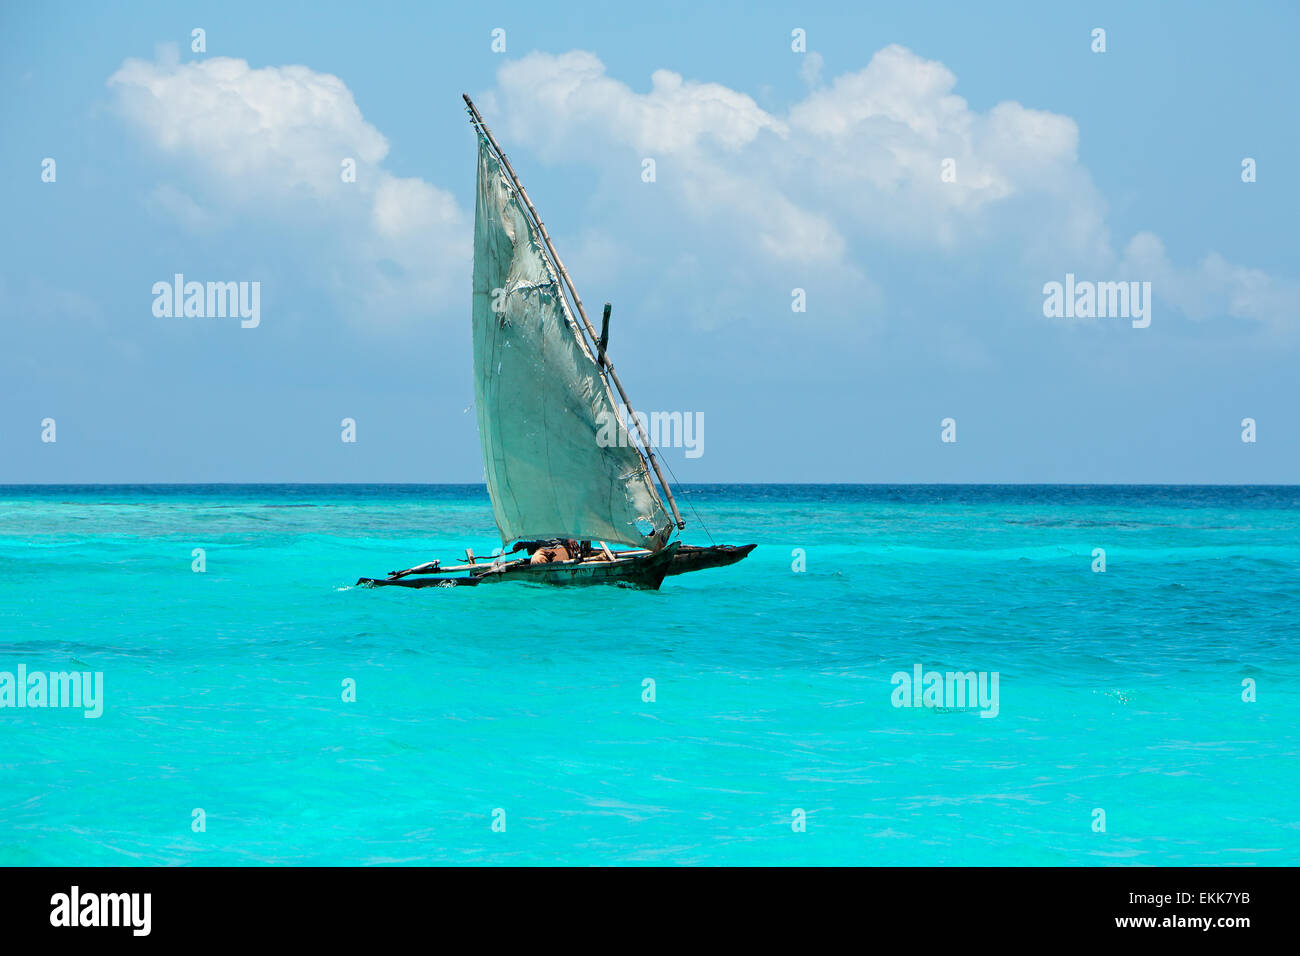 Wooden sailboat  (dhow) on the clear turquoise water of Zanzibar island - Stock Image